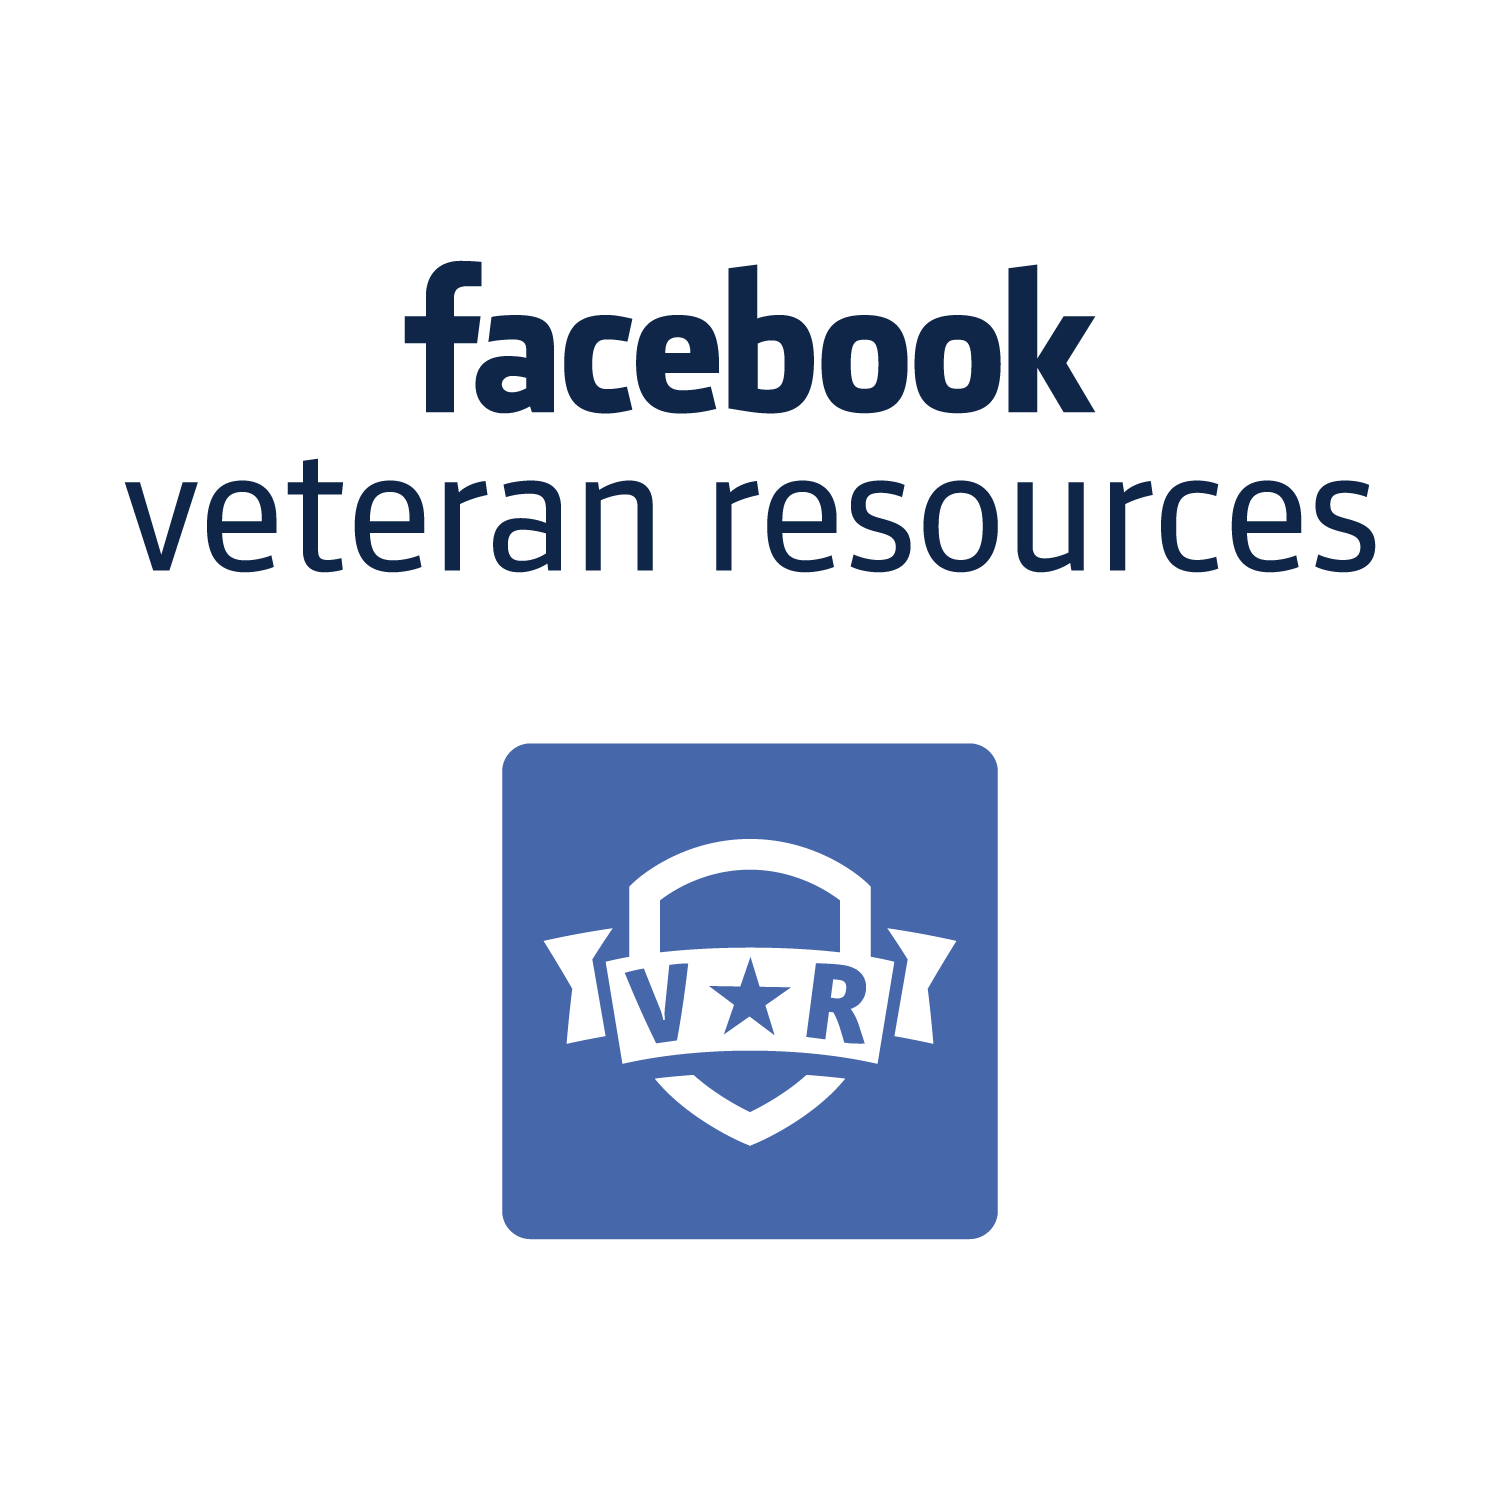 Facebook Veteran's resources